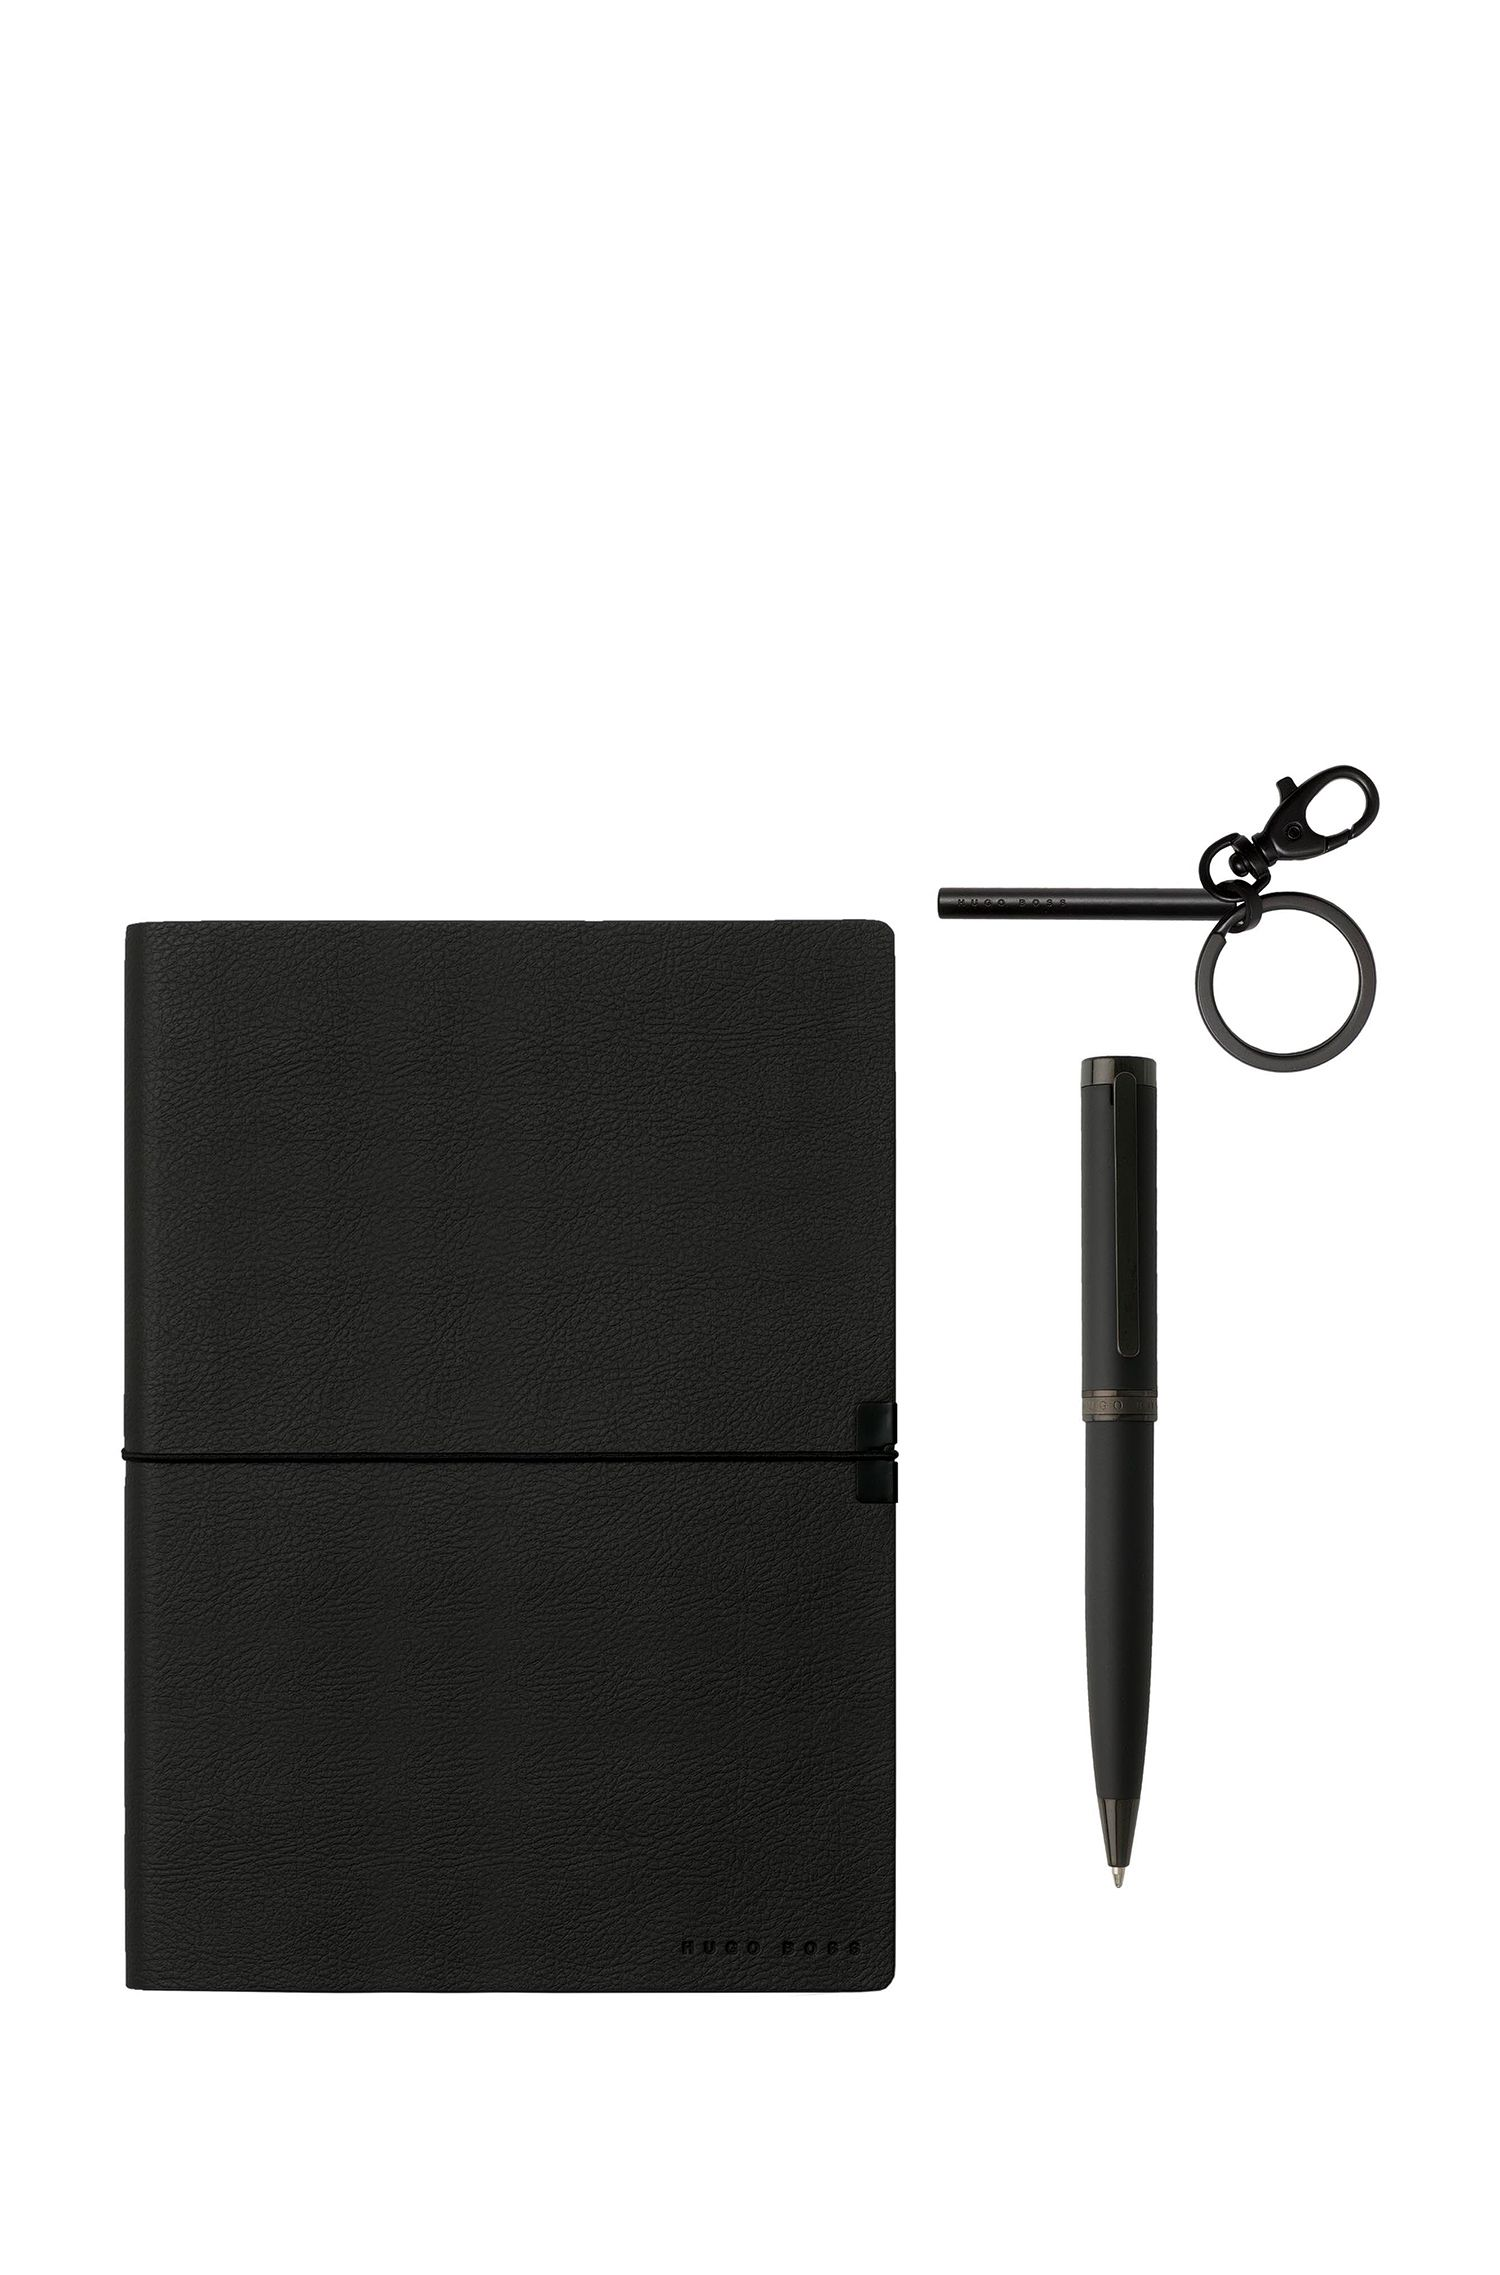 Three-piece set with black keyring, pen and notepad